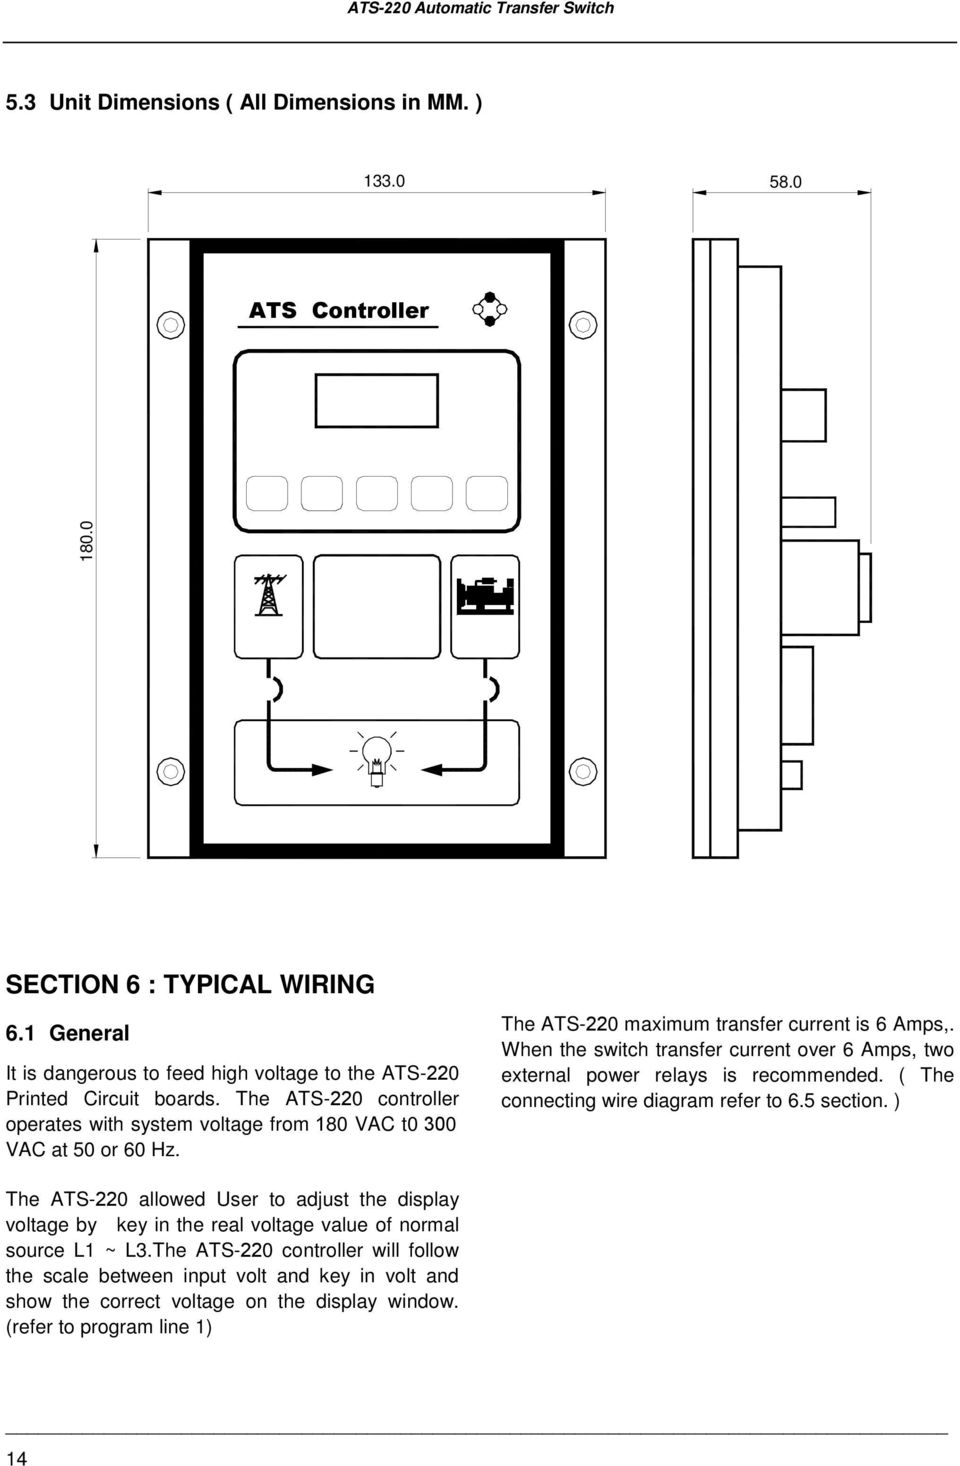 Automatic Transfer Switch Control Unit Operator S Manual Pdf For Service Entrance Wiring Diagram The Ats 220 Maximum Current Is 6 Amps When